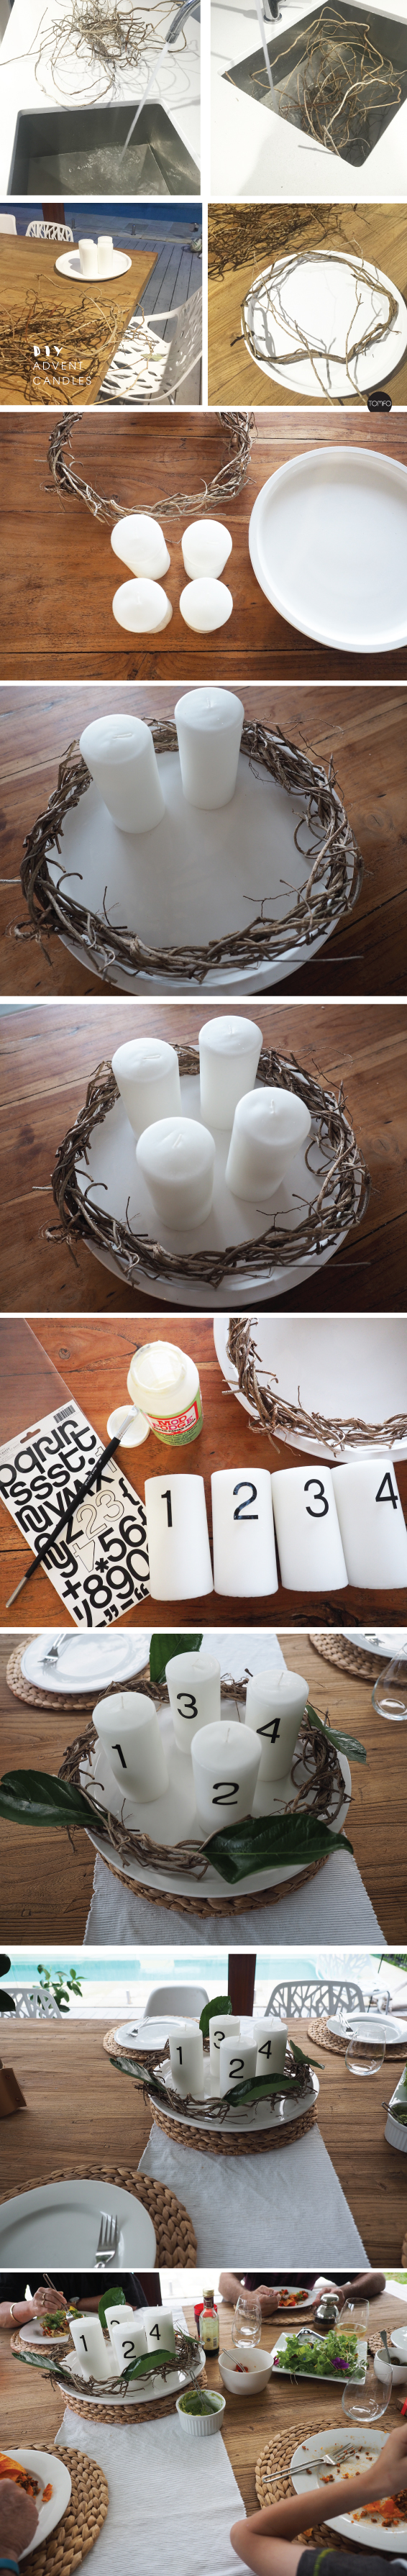 diy-advent-candles-tutorial